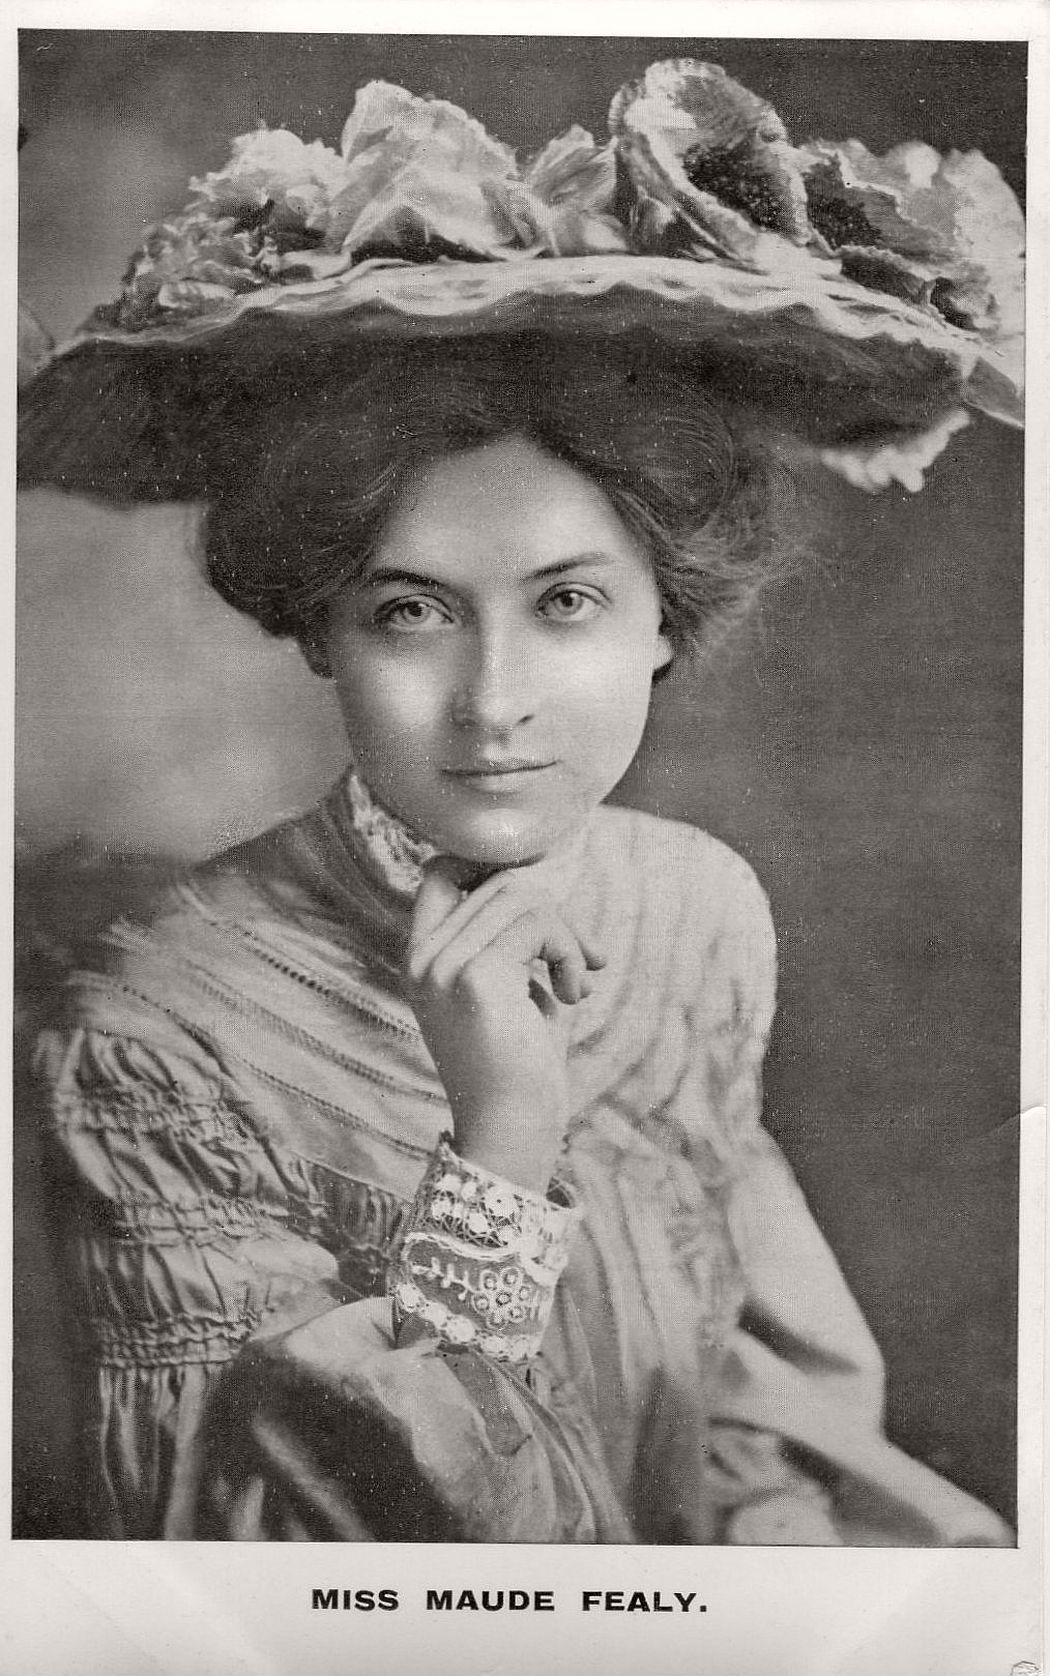 vintage-postcard-of-actress-miss-maude-fealy-1900s-early-xx-century-05